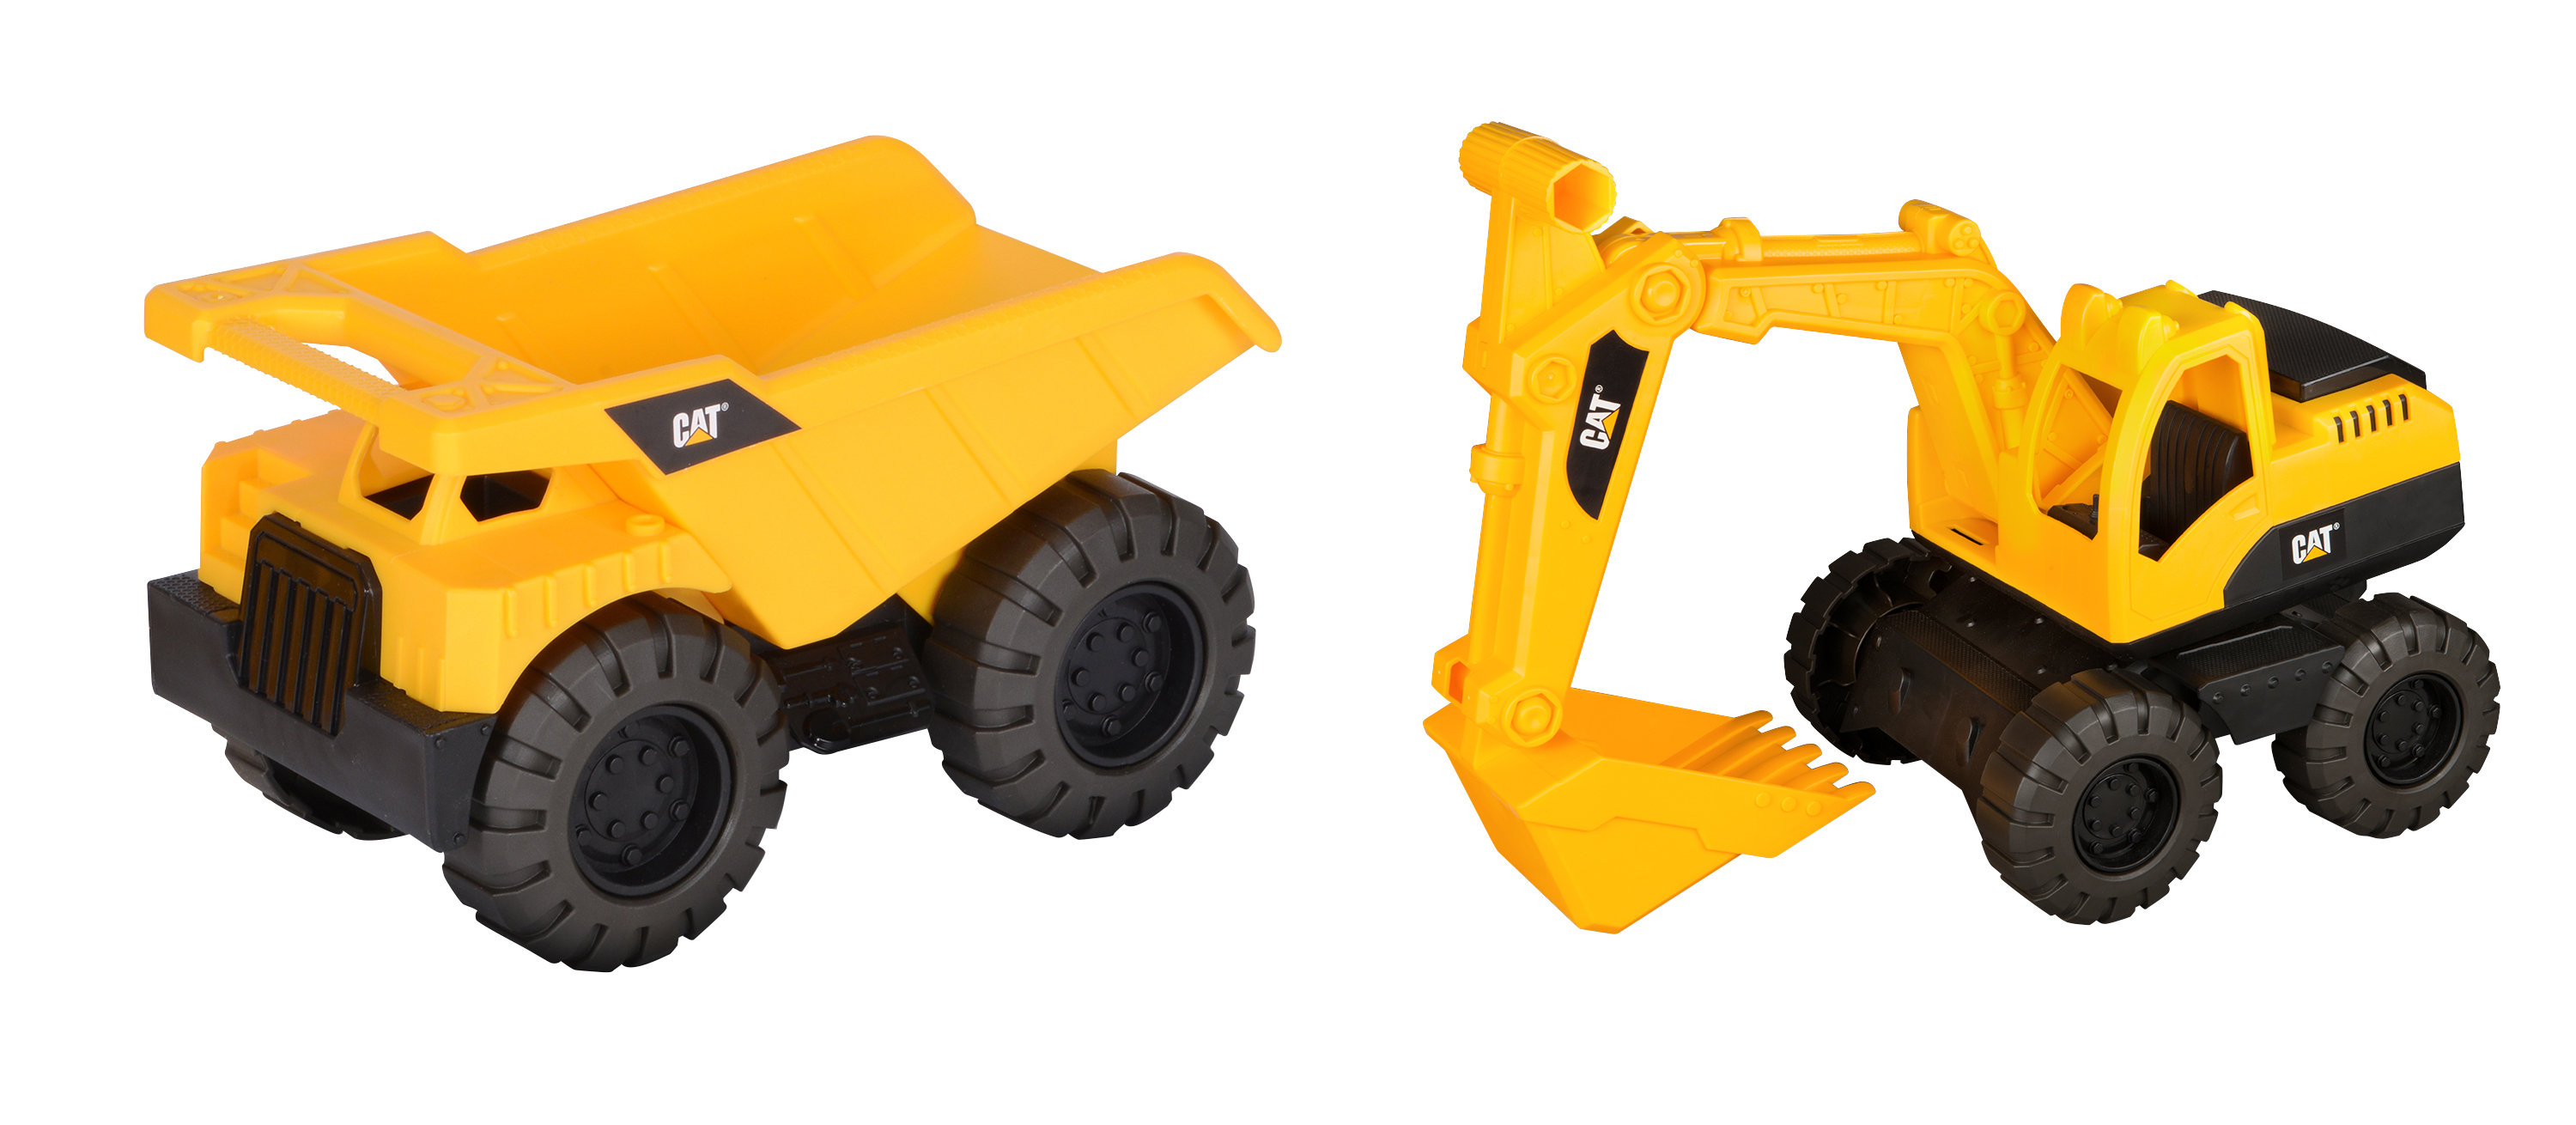 Caterpillar Tough Tracks Rugged Machine Dump Truck and Excavator 2 pack by Toy State International Limited